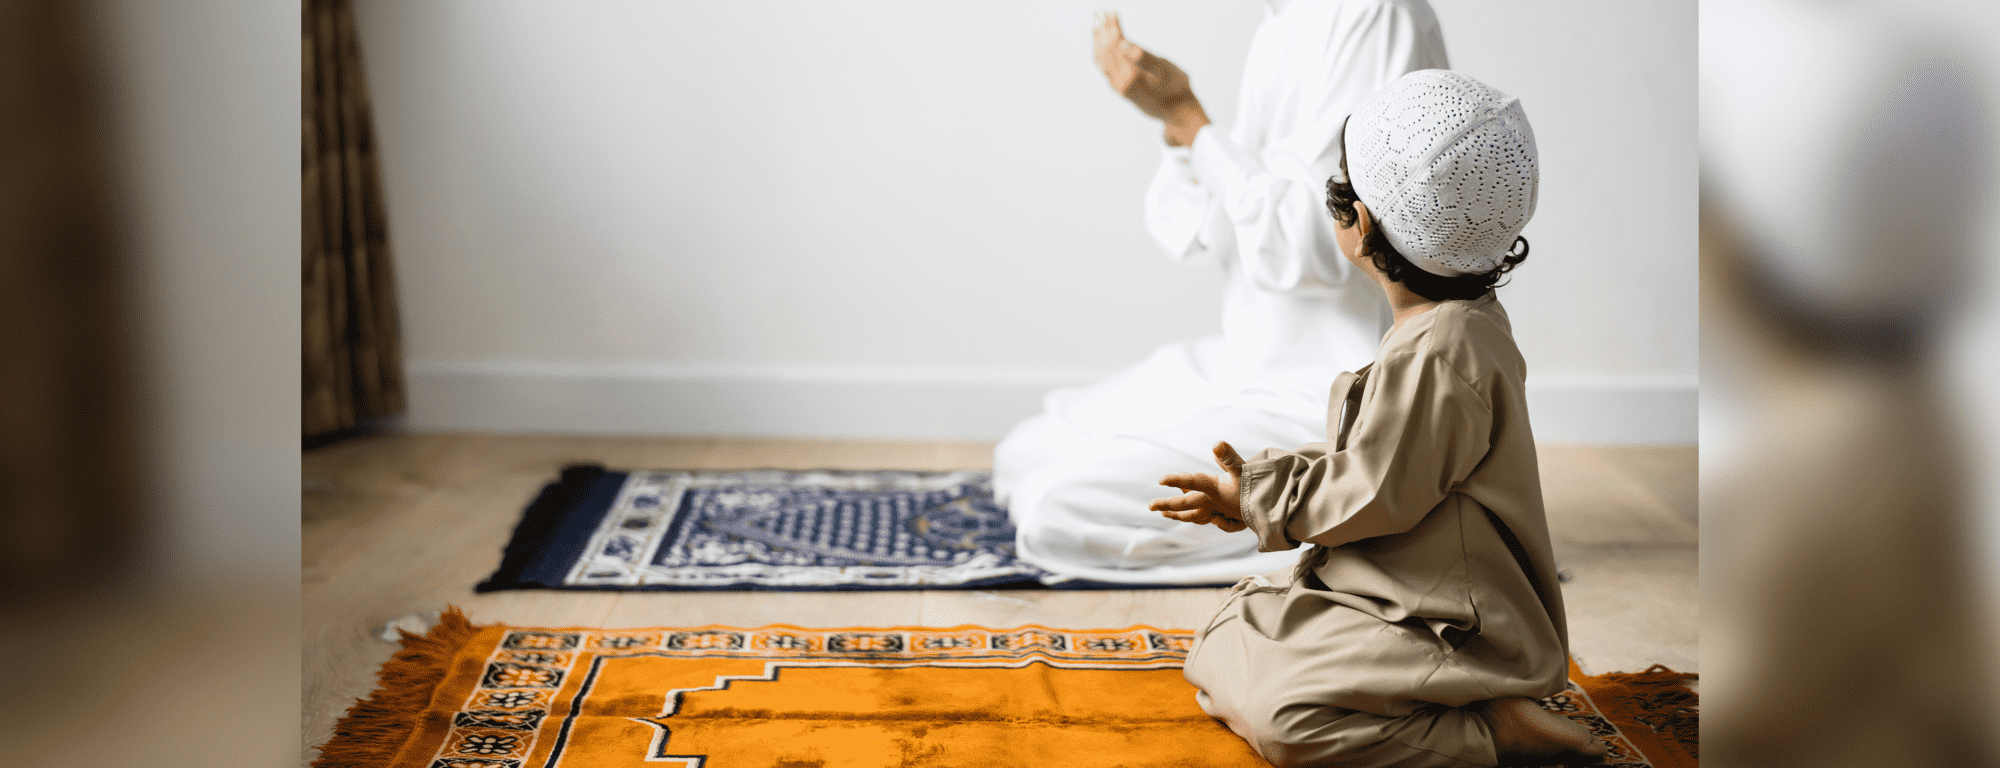 05/2019 Hadith as Ethics: The Prophetic Practice as a Moral Model